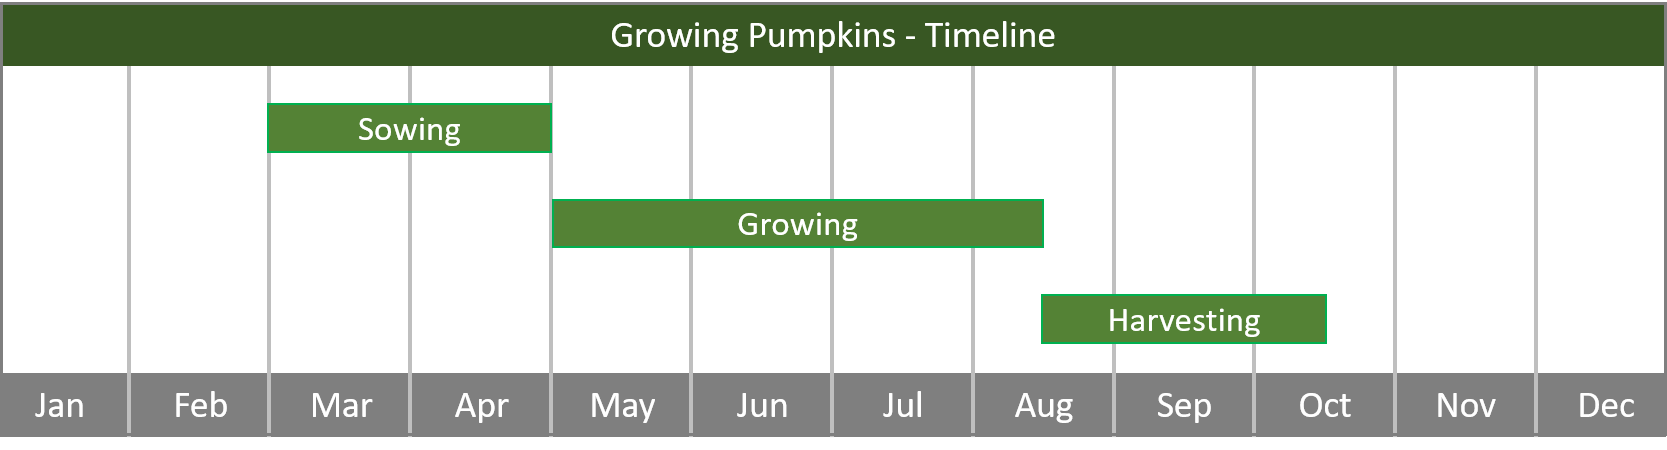 how to grow pumpkins from seed to harvest - timeline